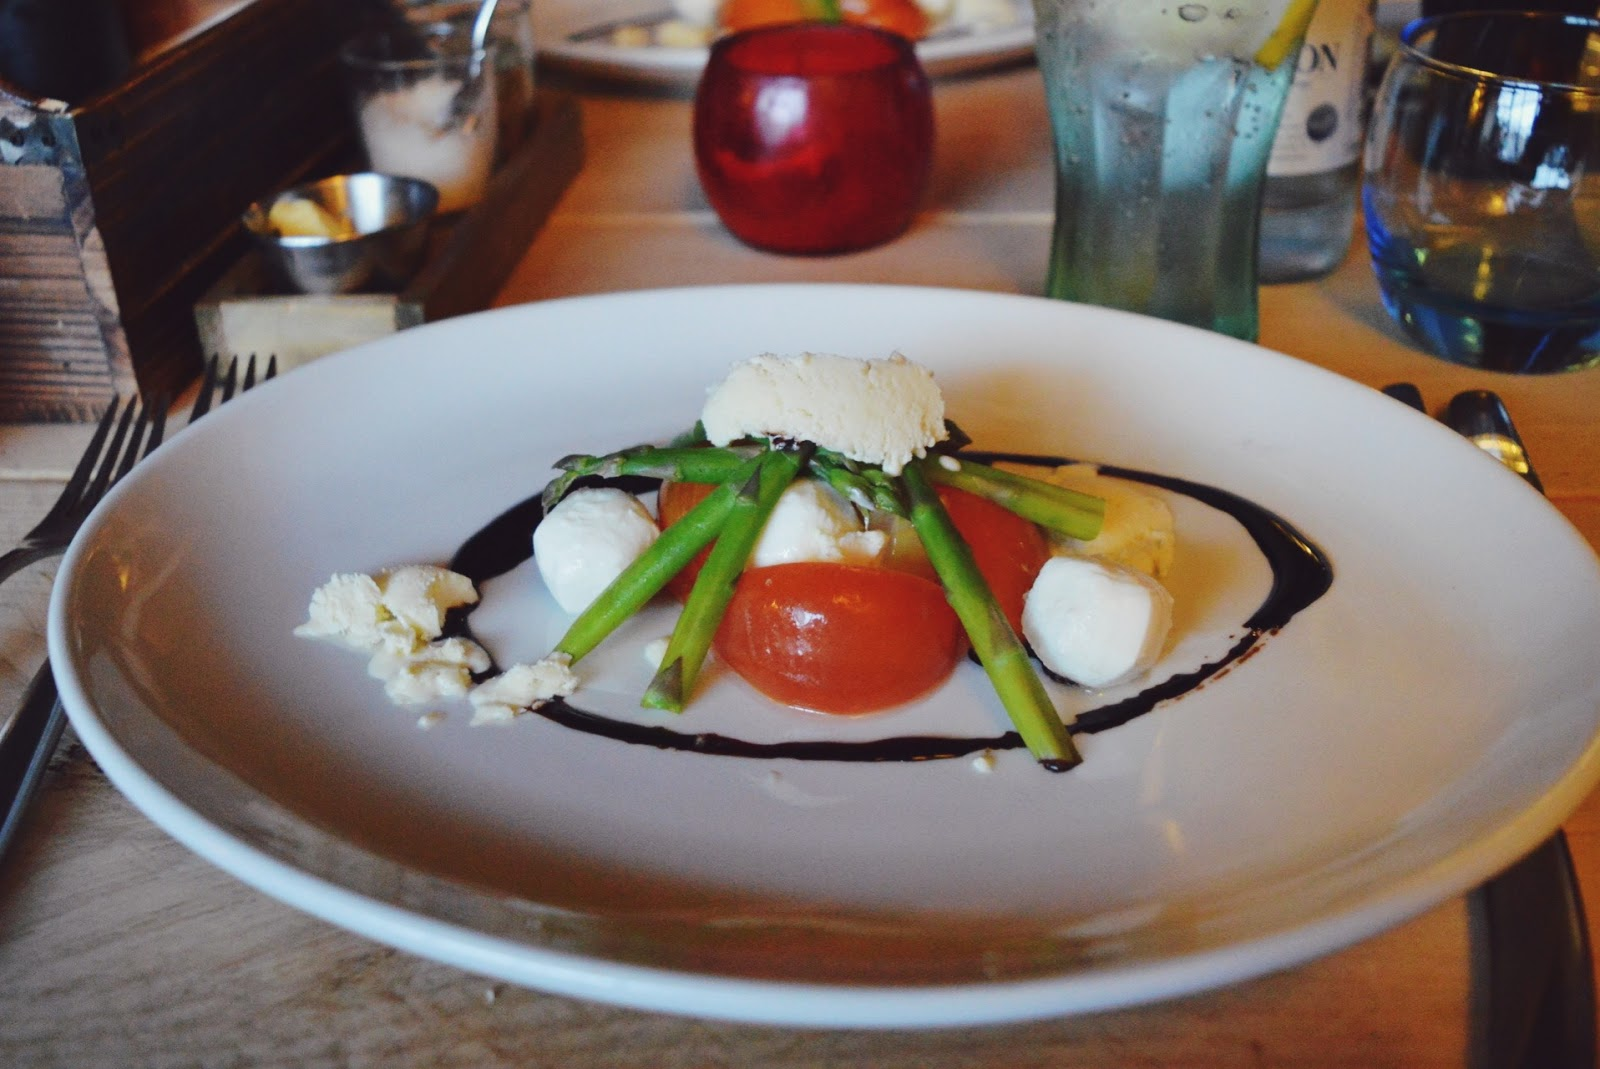 The Three Cups Stockbridge review, food bloggers, FashionFake, goats cheese salad